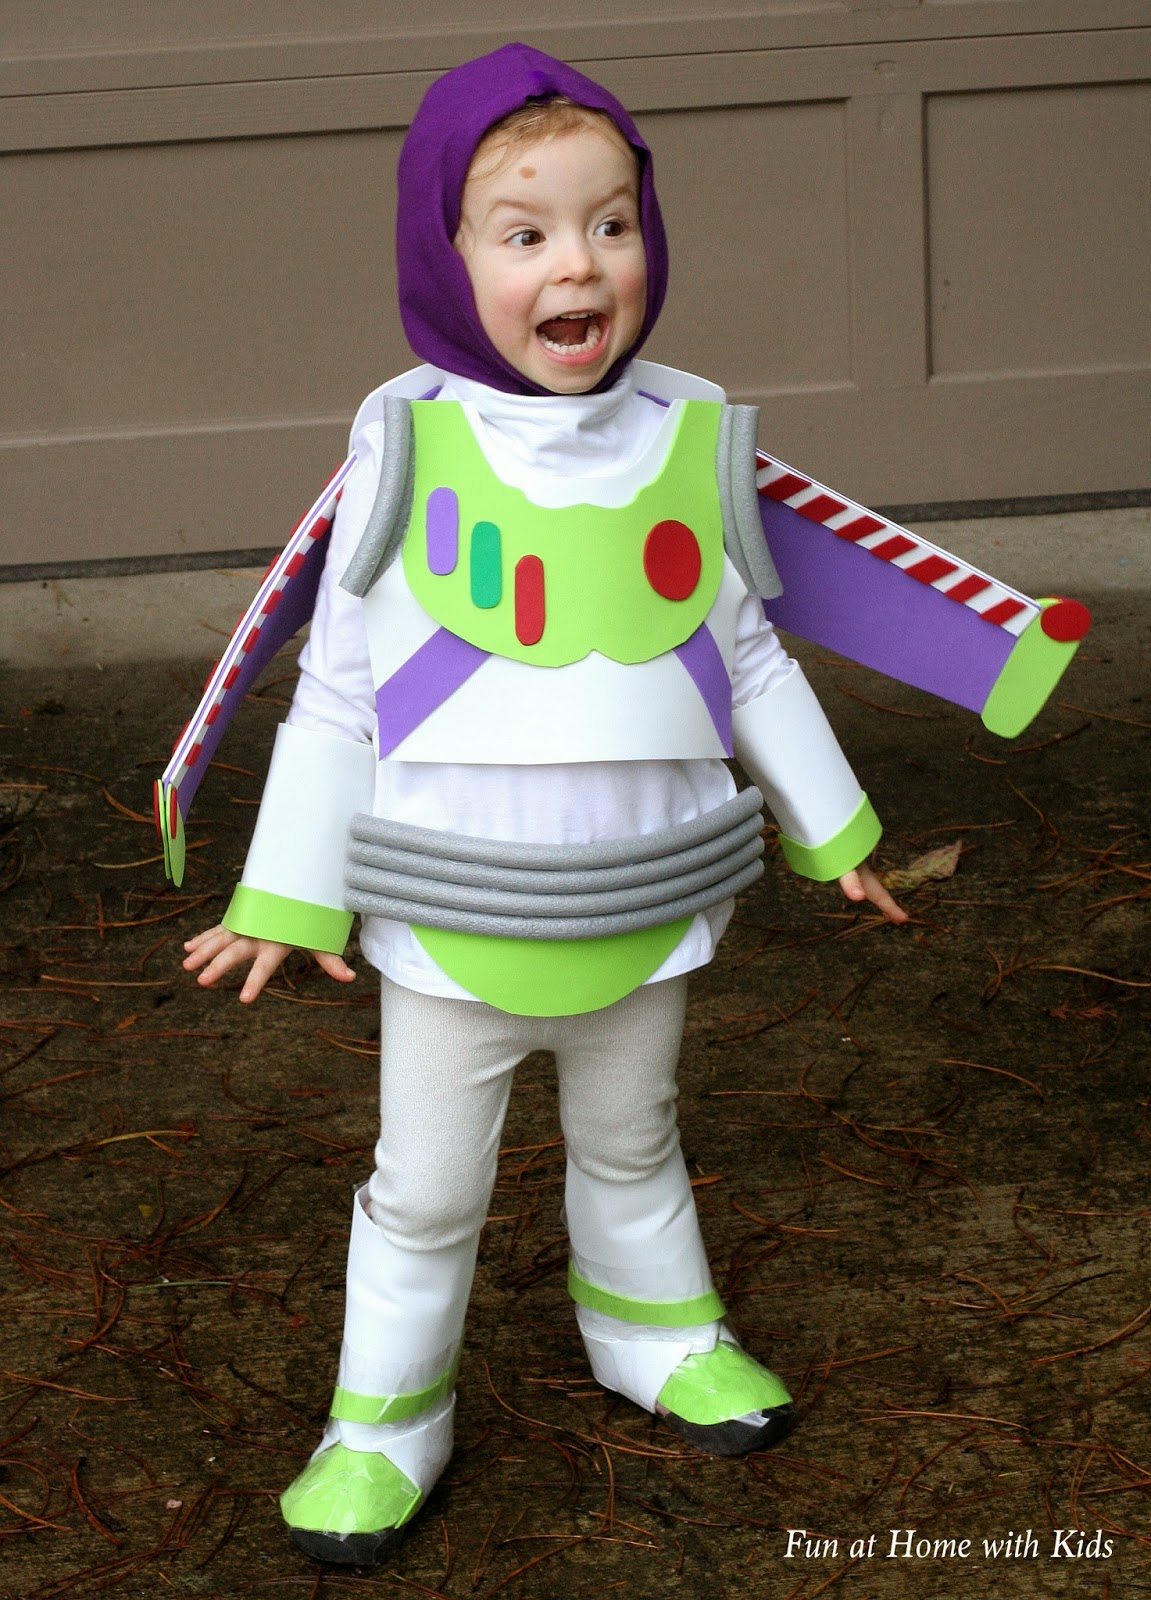 Diy kids buzz lightyear no sew halloween costume diy kids buzz lightyear no sew halloween costume from fun at home with kids solutioingenieria Images